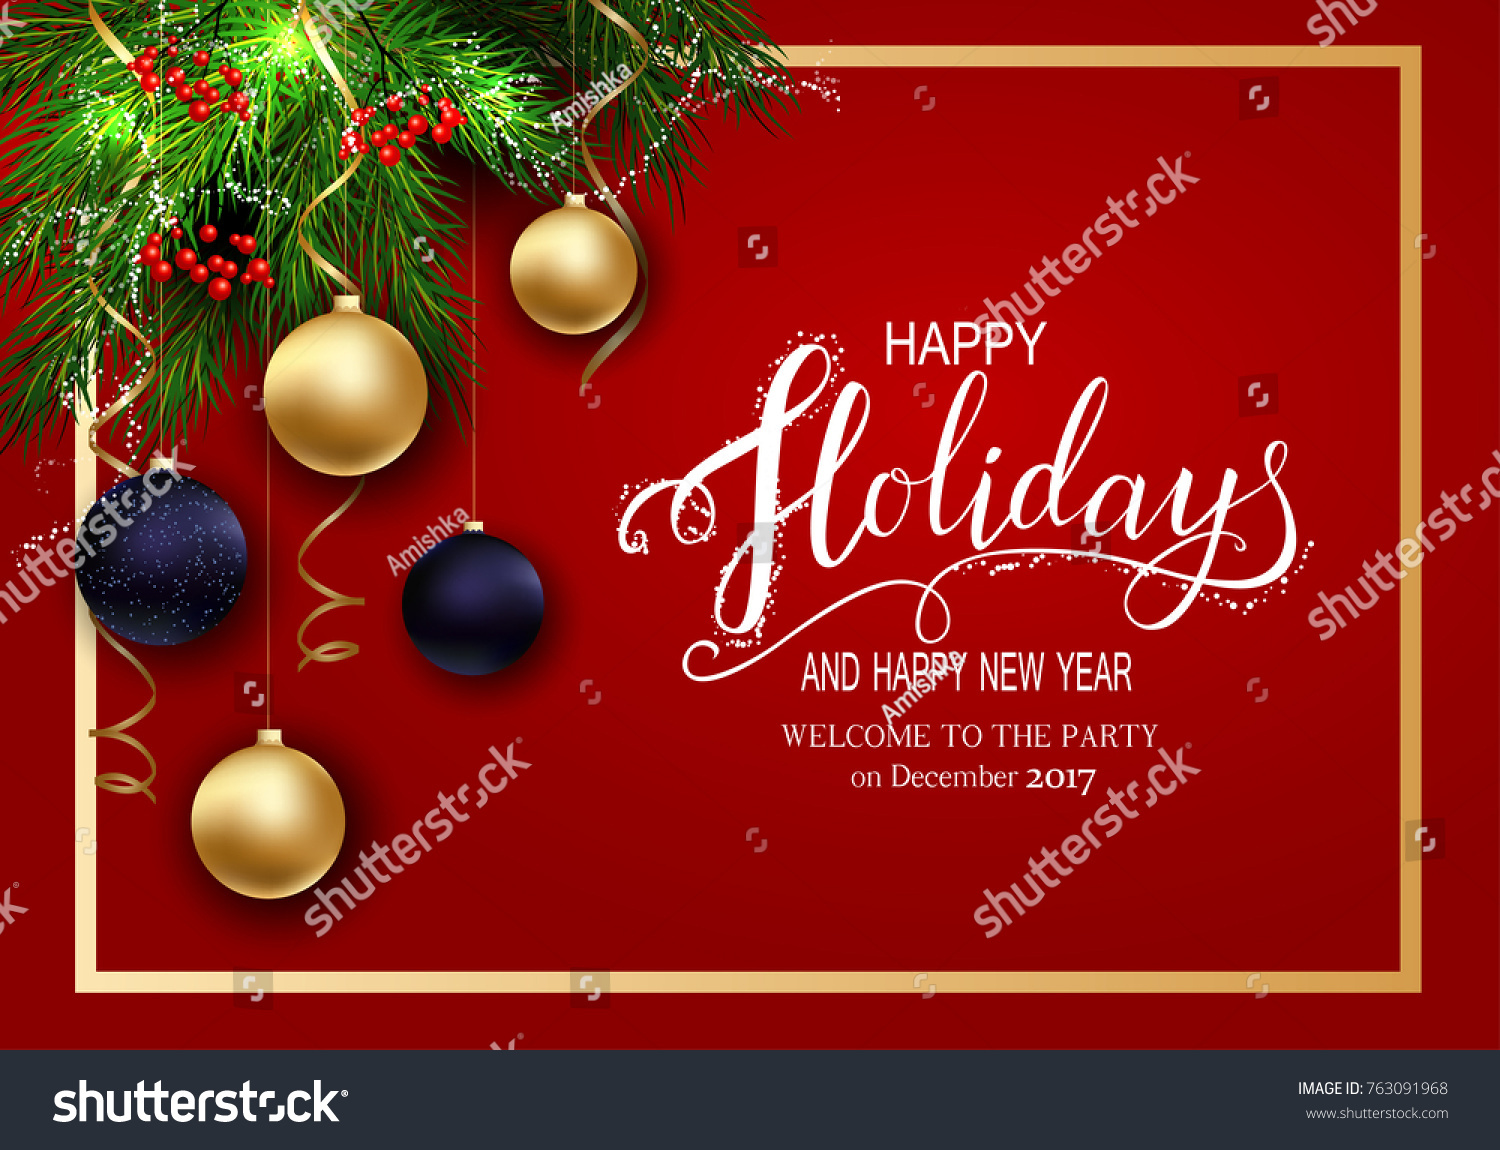 Holidays Greeting Card Winter Happy Holidays Stock Vector 763091968